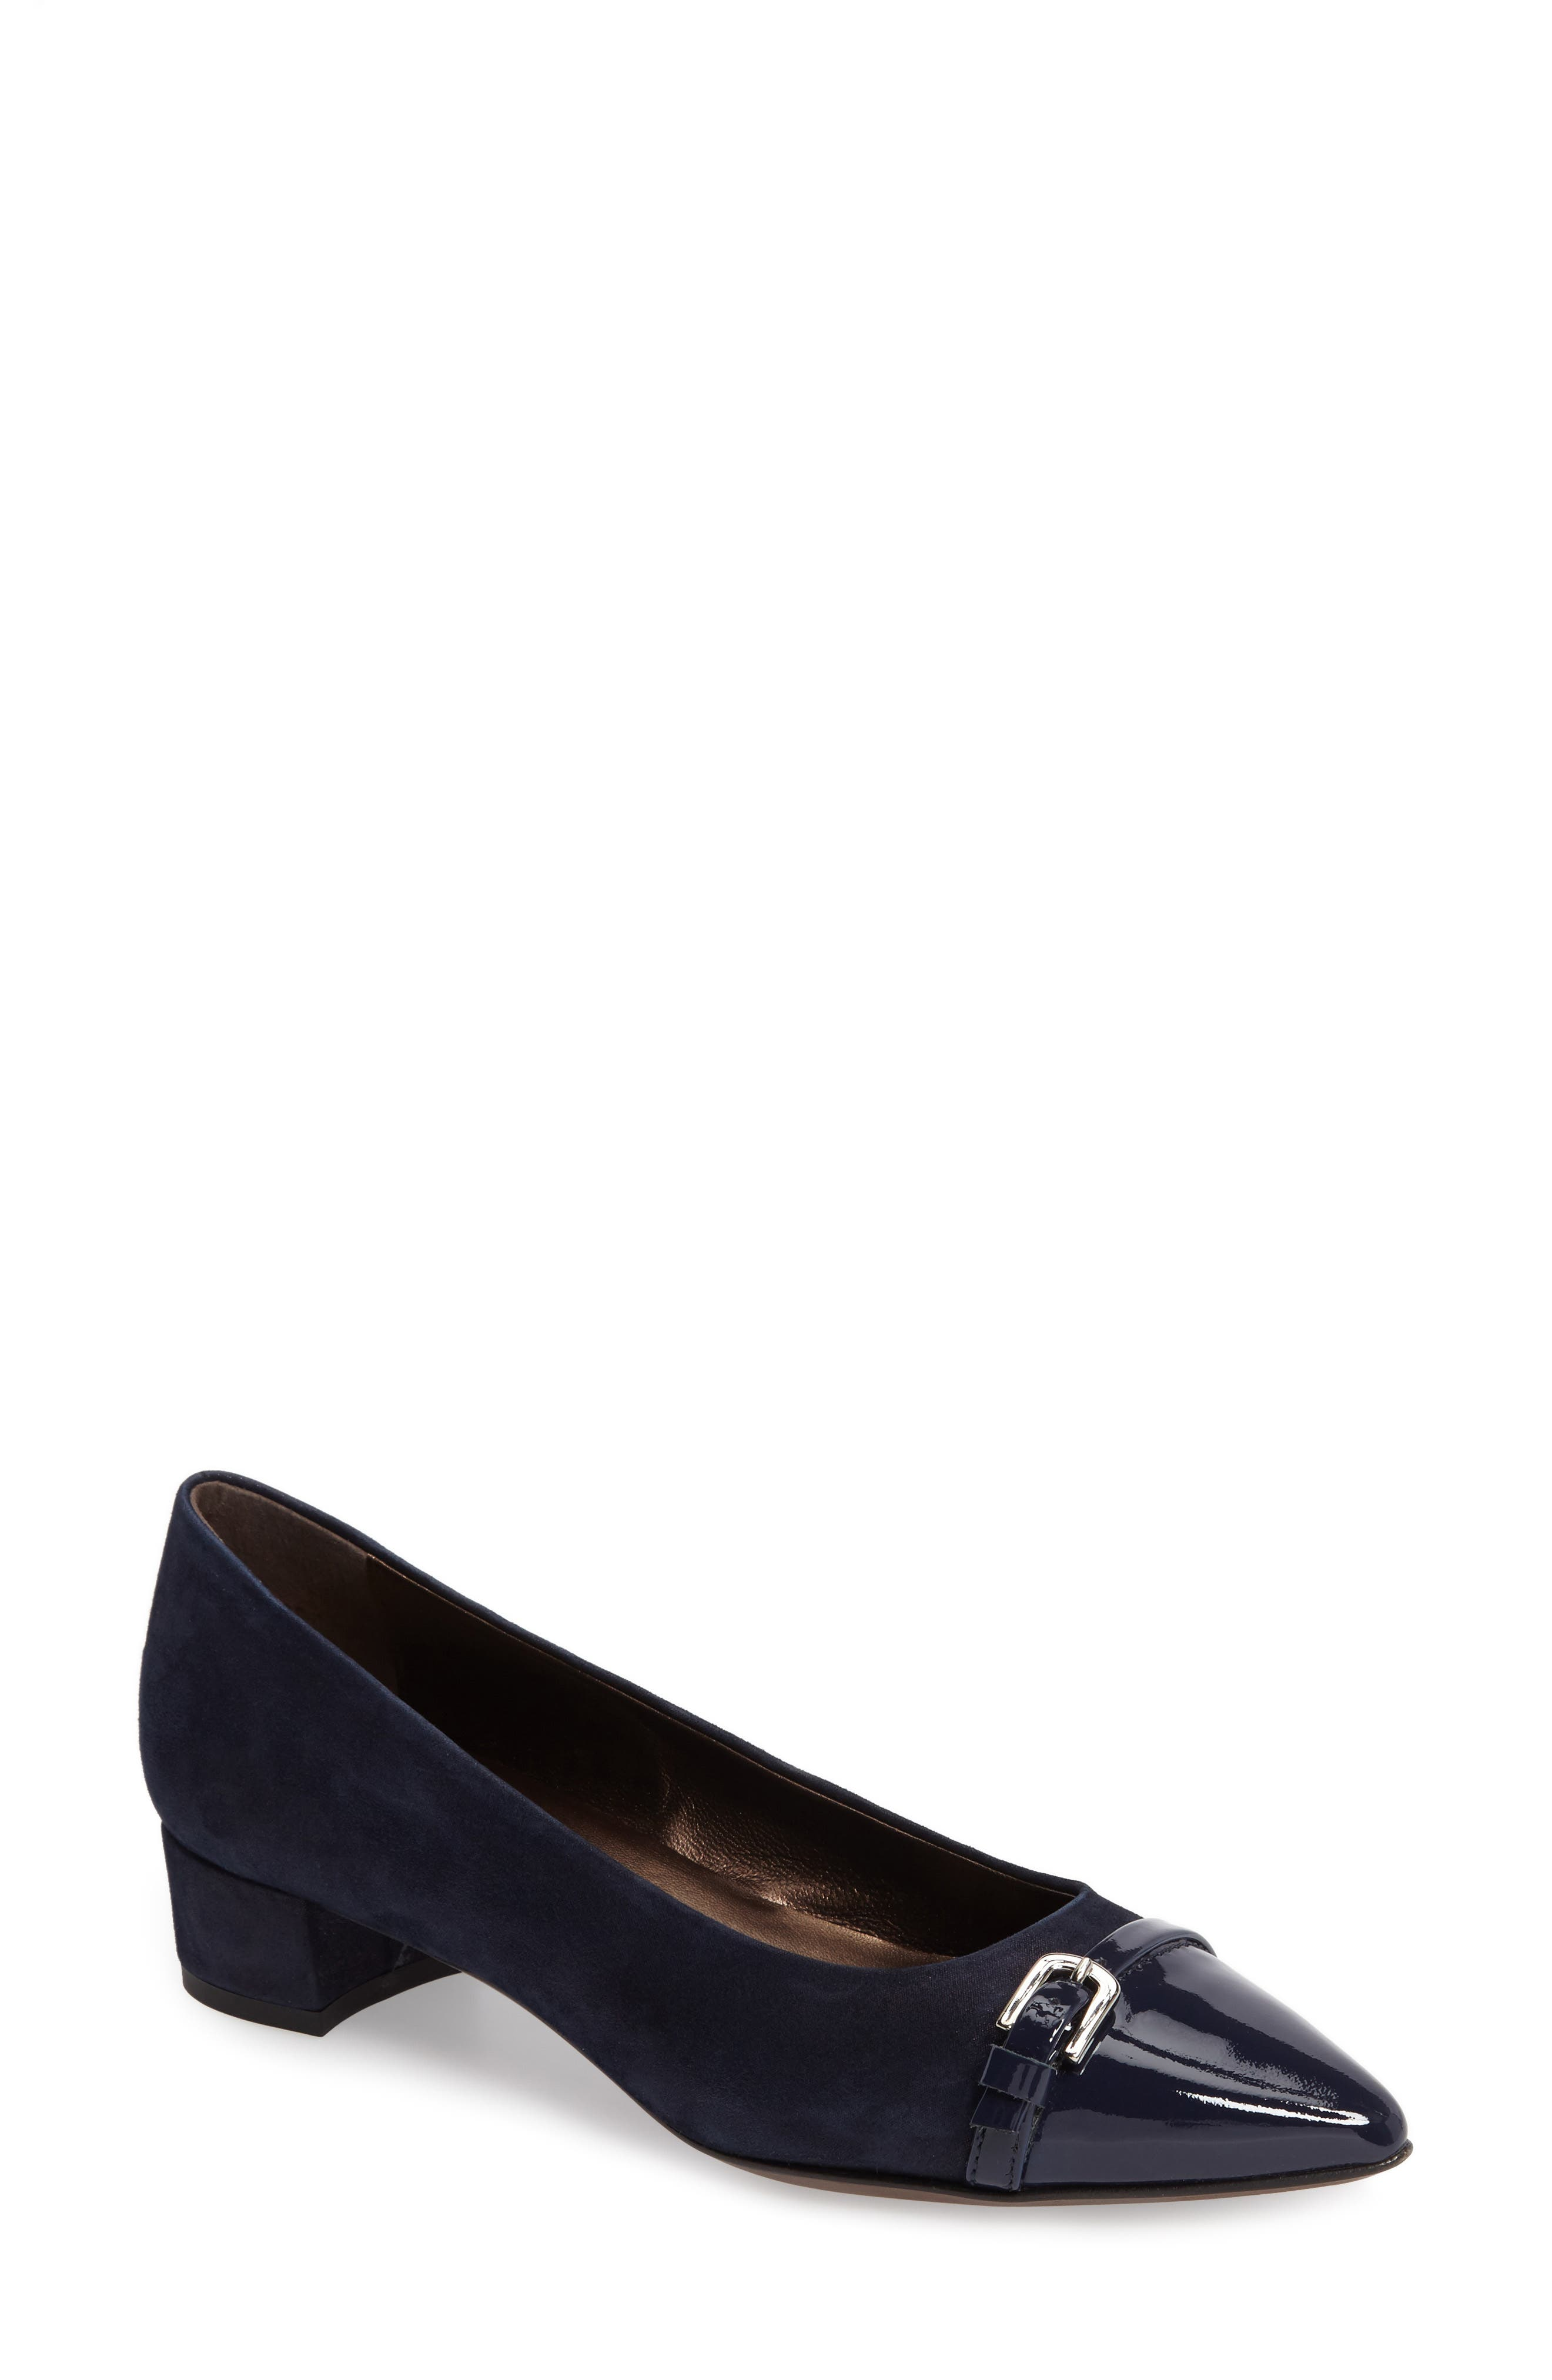 Belted Block Heel Pump,                             Main thumbnail 1, color,                             Night Shimmer Leather